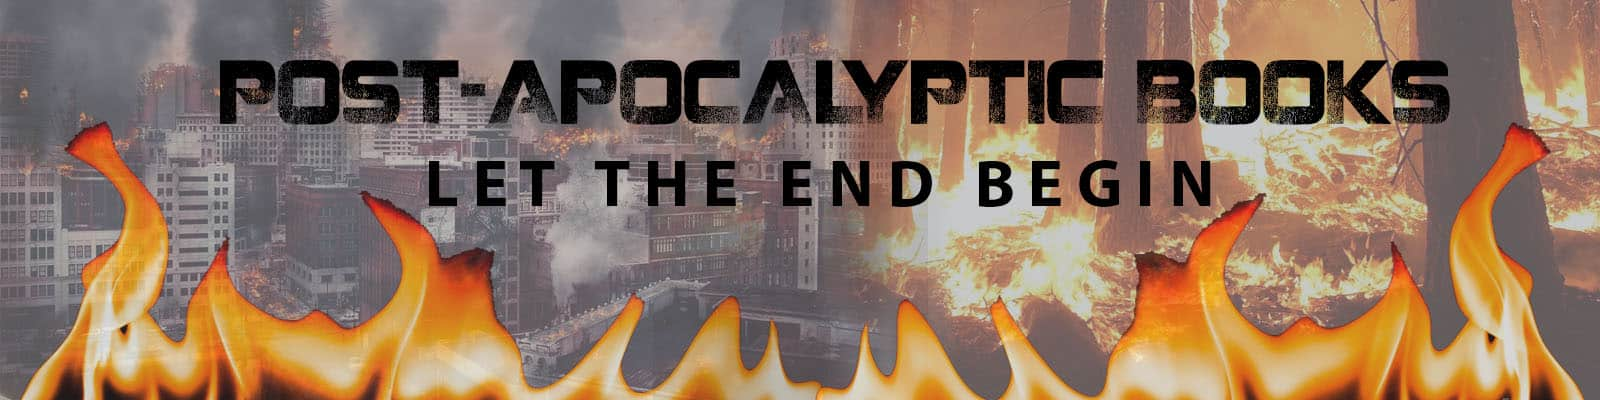 Post-Apocalyptic Books: Let the End Begin